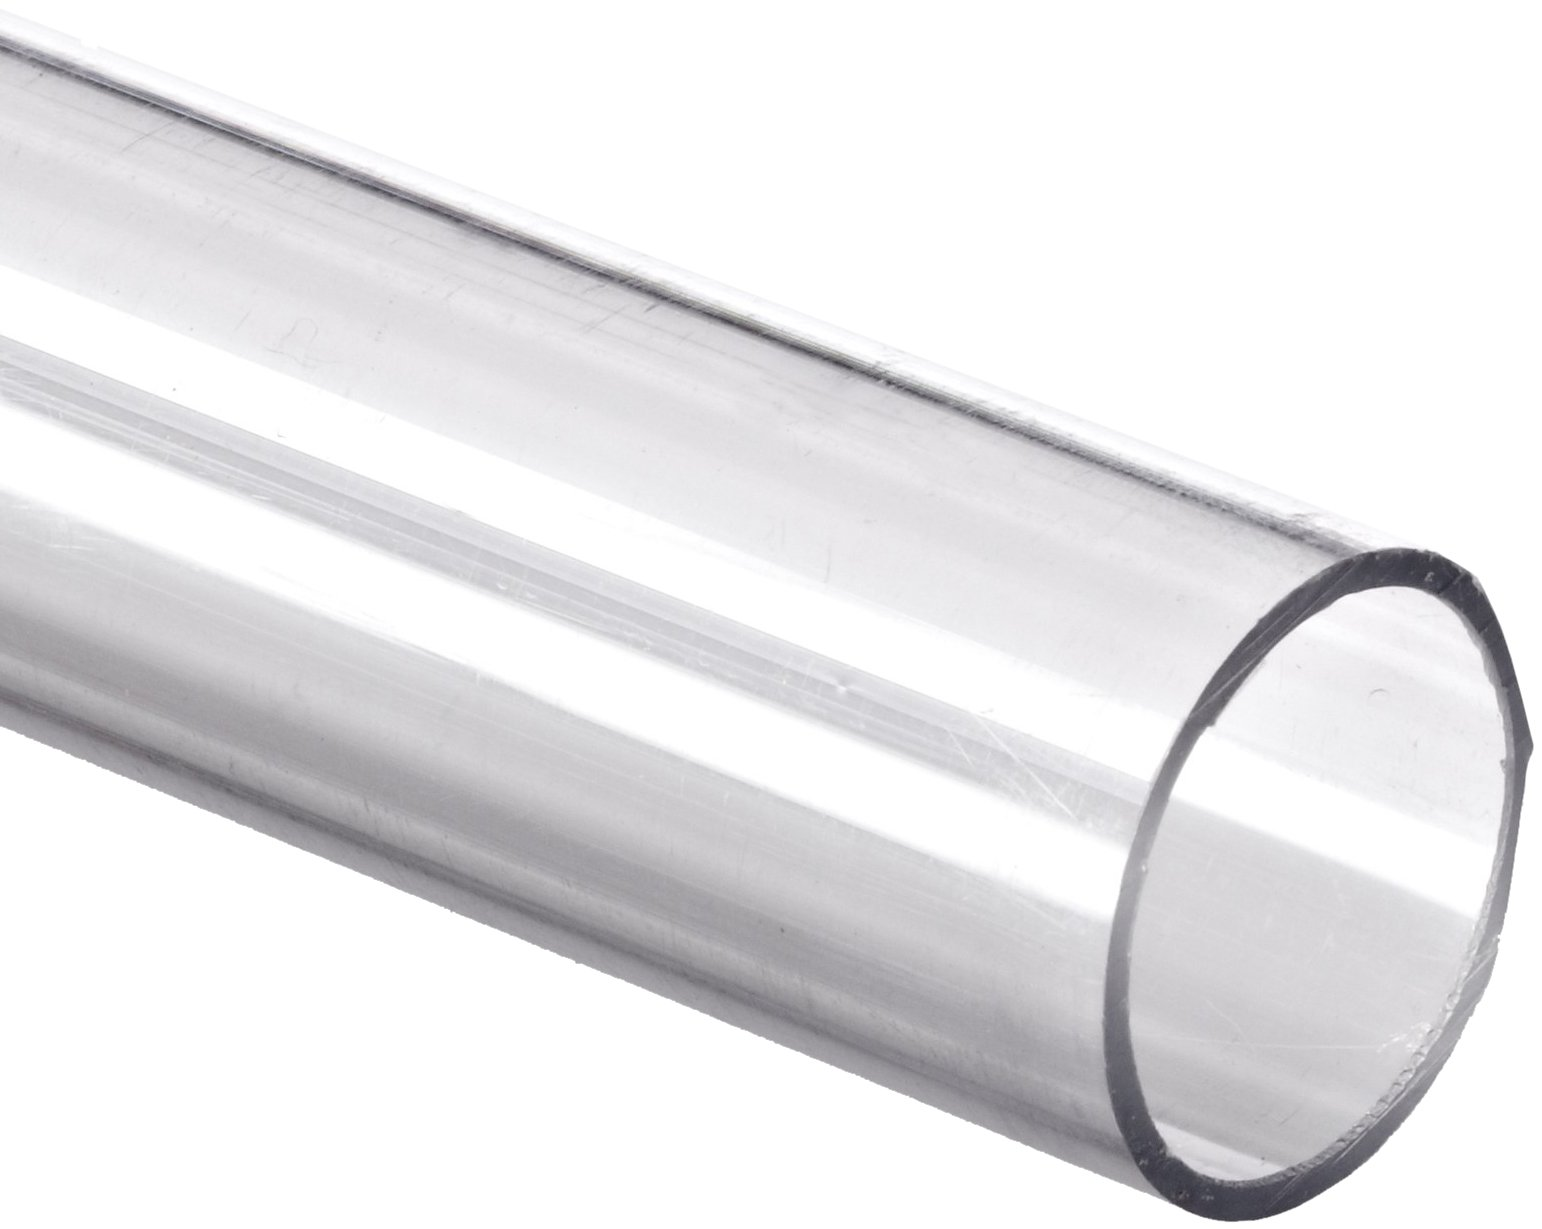 Polycarbonate Tubing, 1 7/8'' ID x 2'' OD x 1/16'' Wall, Clear Color 48'' L